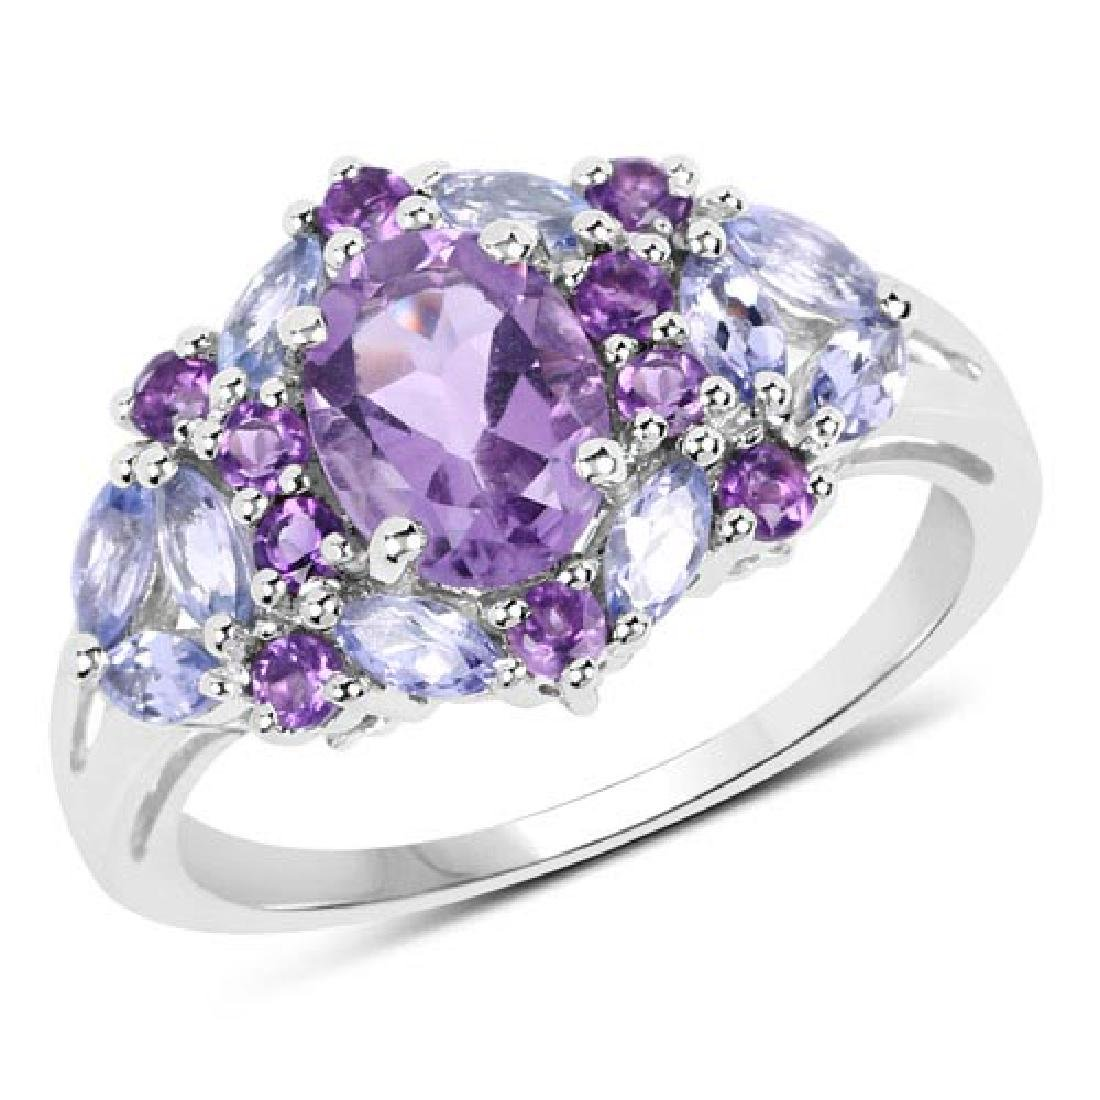 2.25 Carat Genuine Amethyst and Tanzanite .925 Sterling